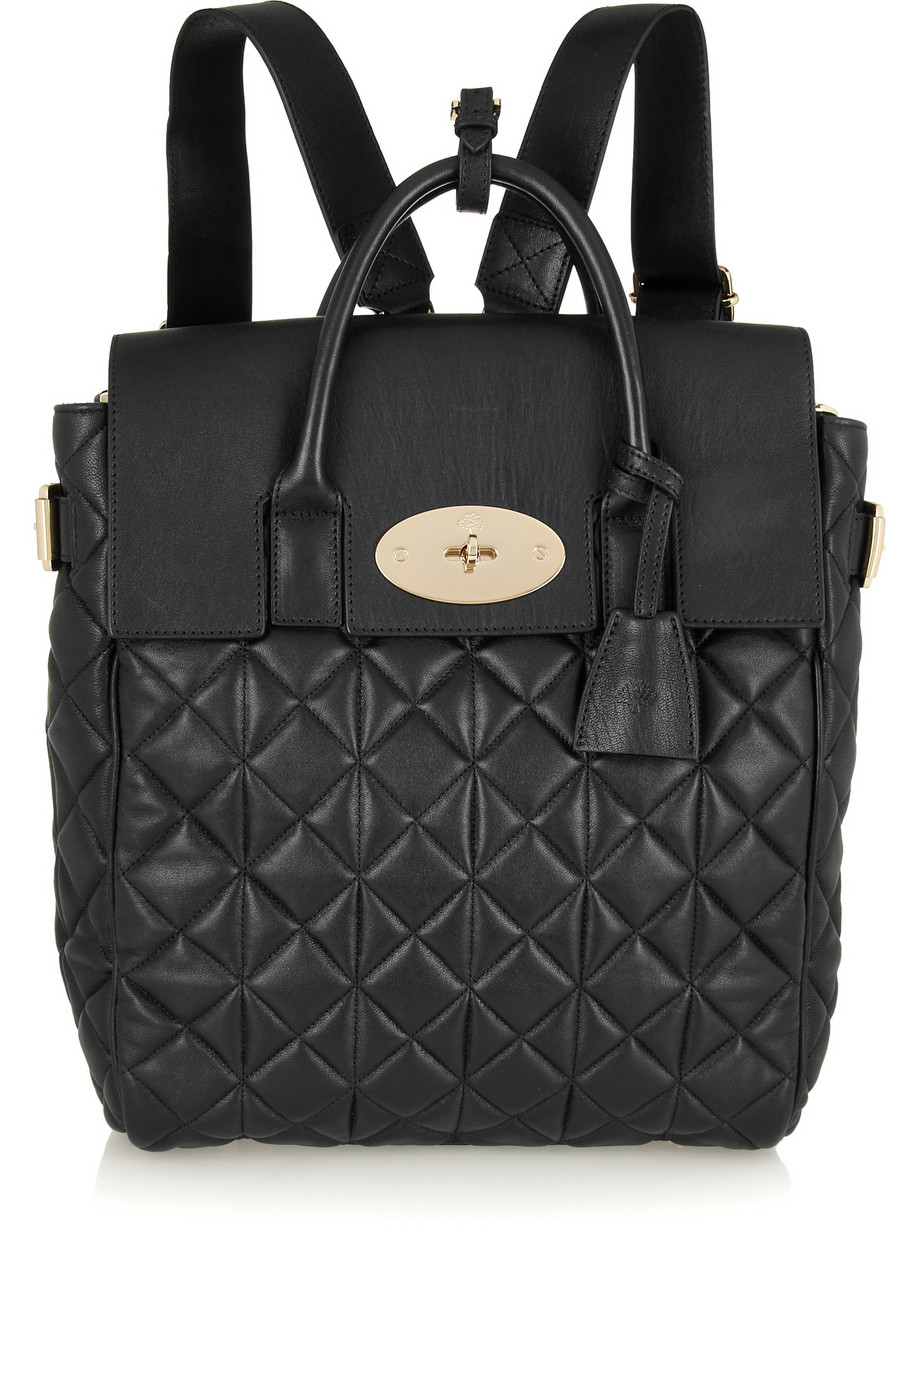 Mulberry Cara Delevingne Large Quilted Leather Backpack in ...